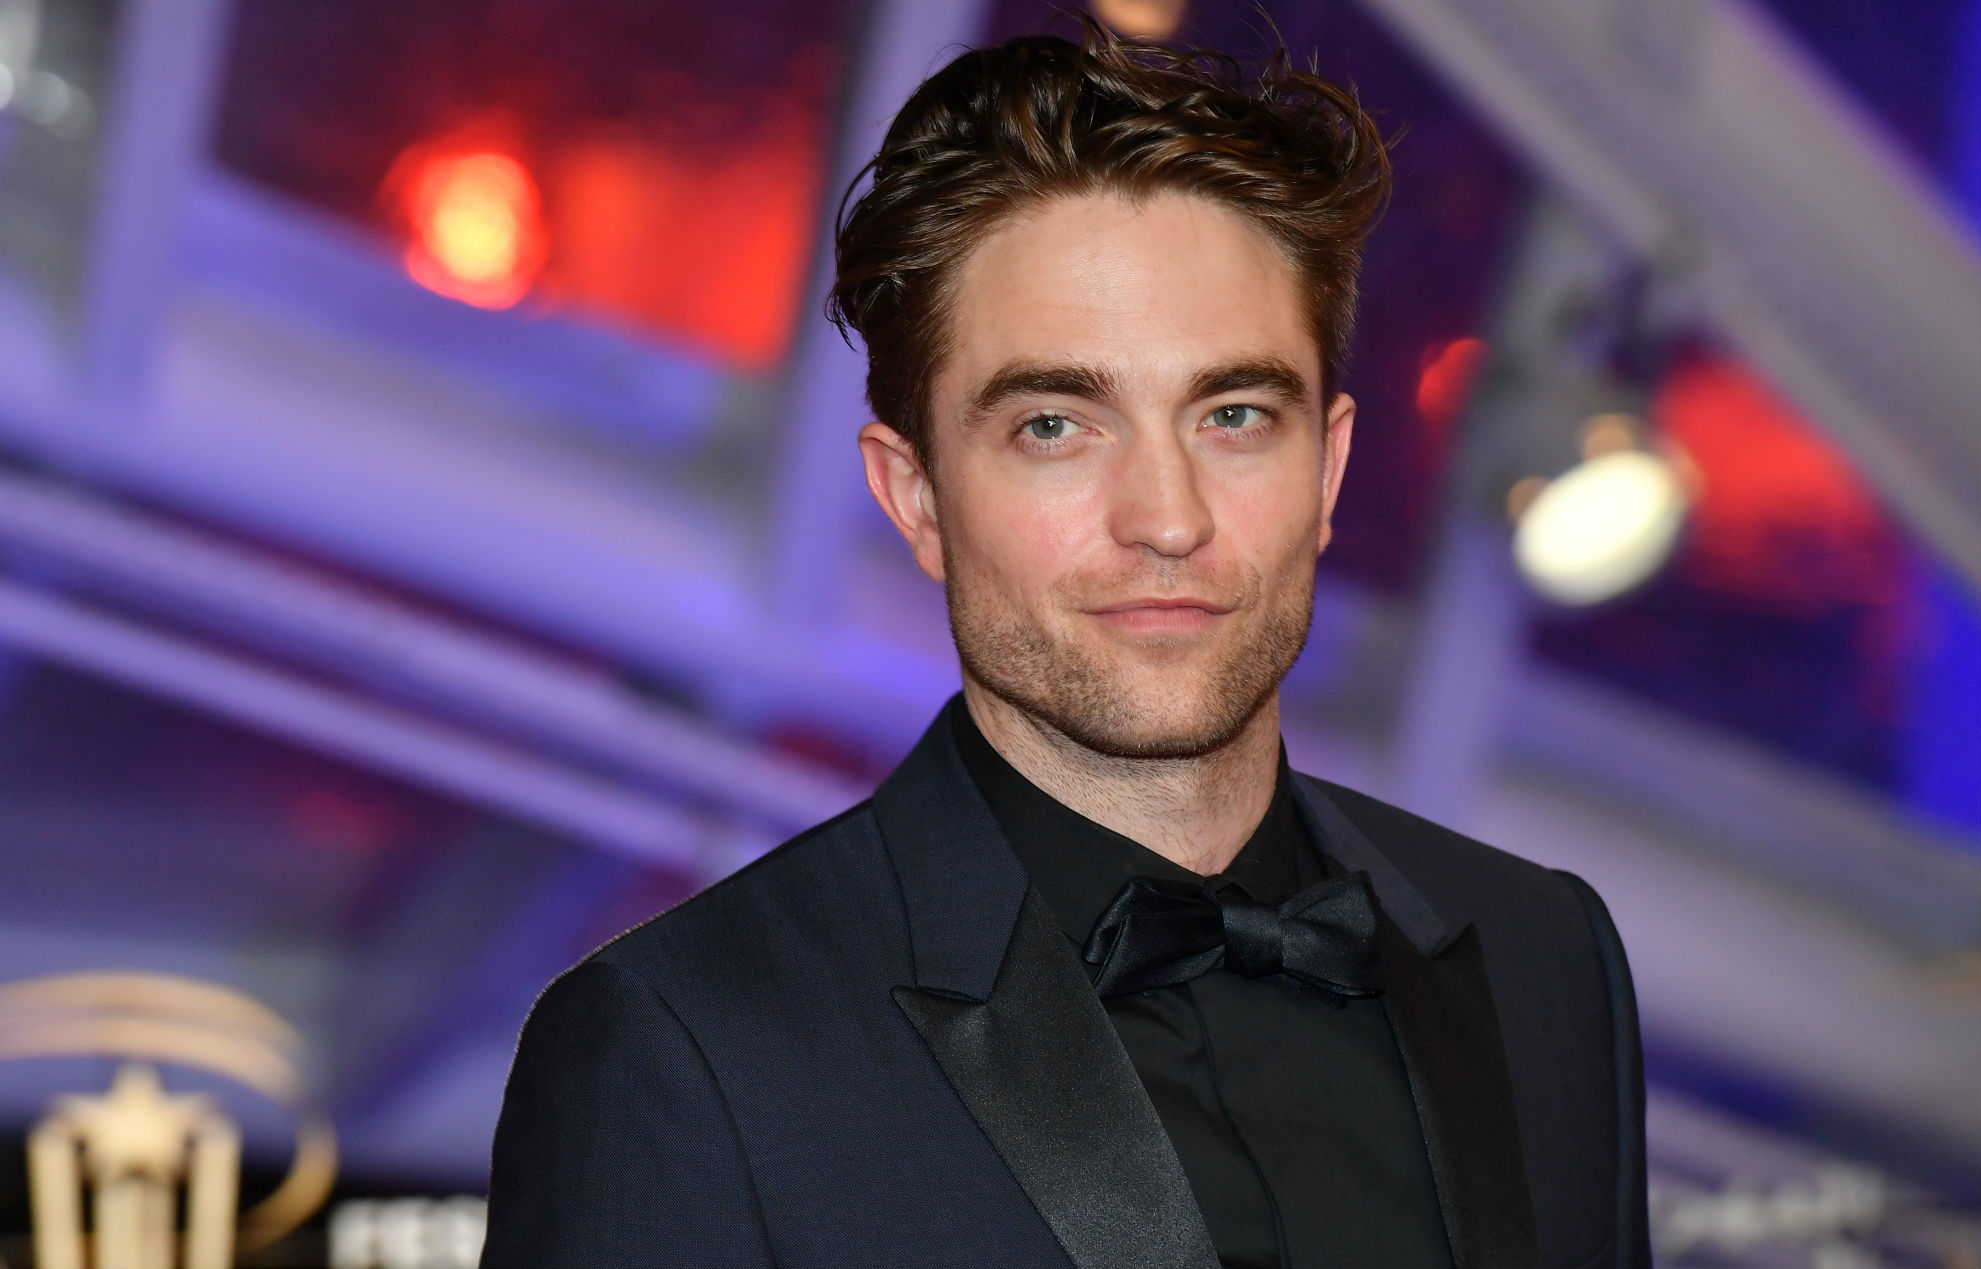 Robert Pattinson coronavirus